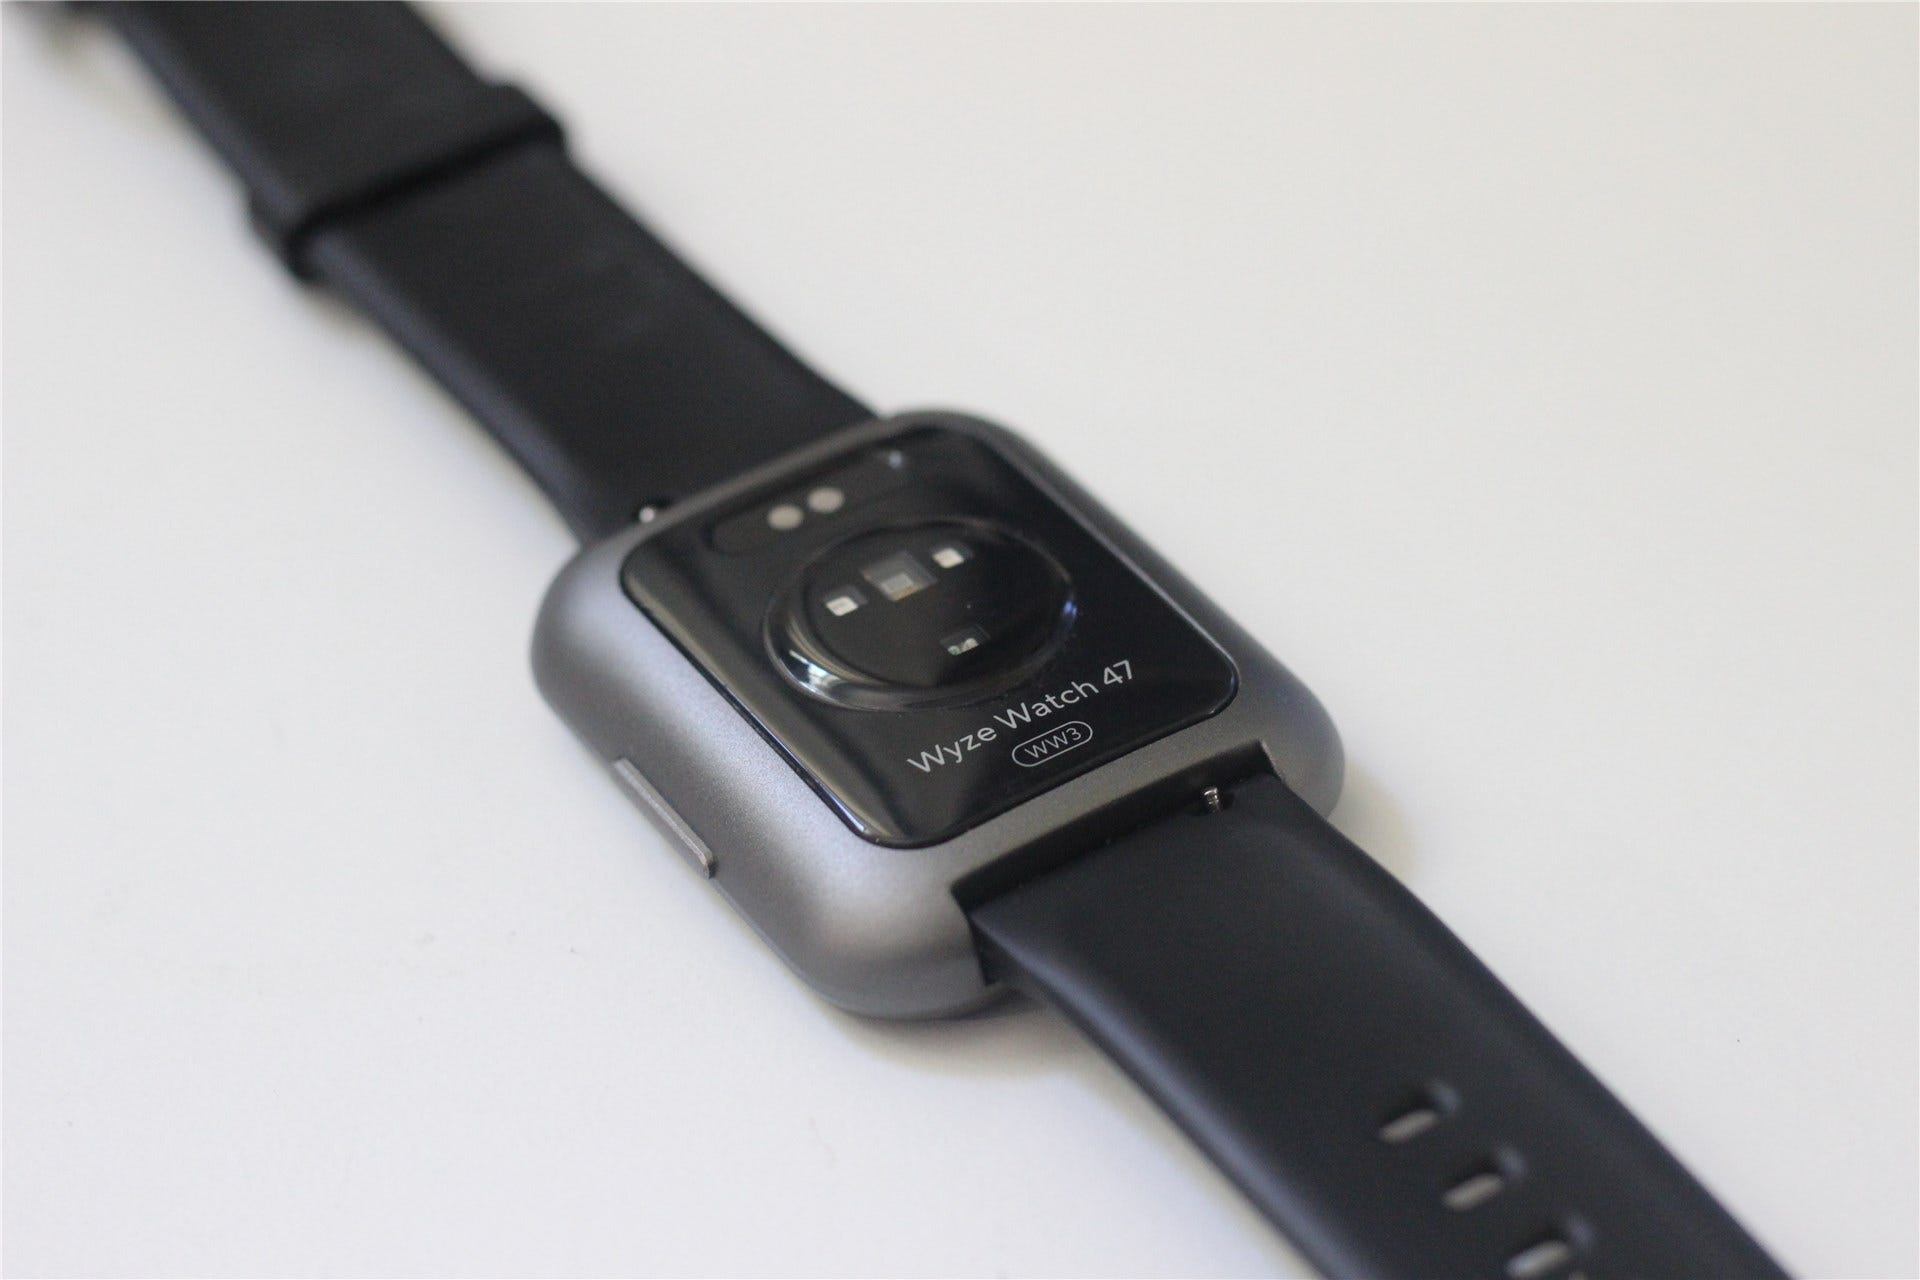 The back of the Wyze Watch 47, showing the heart rate sensors and charging port